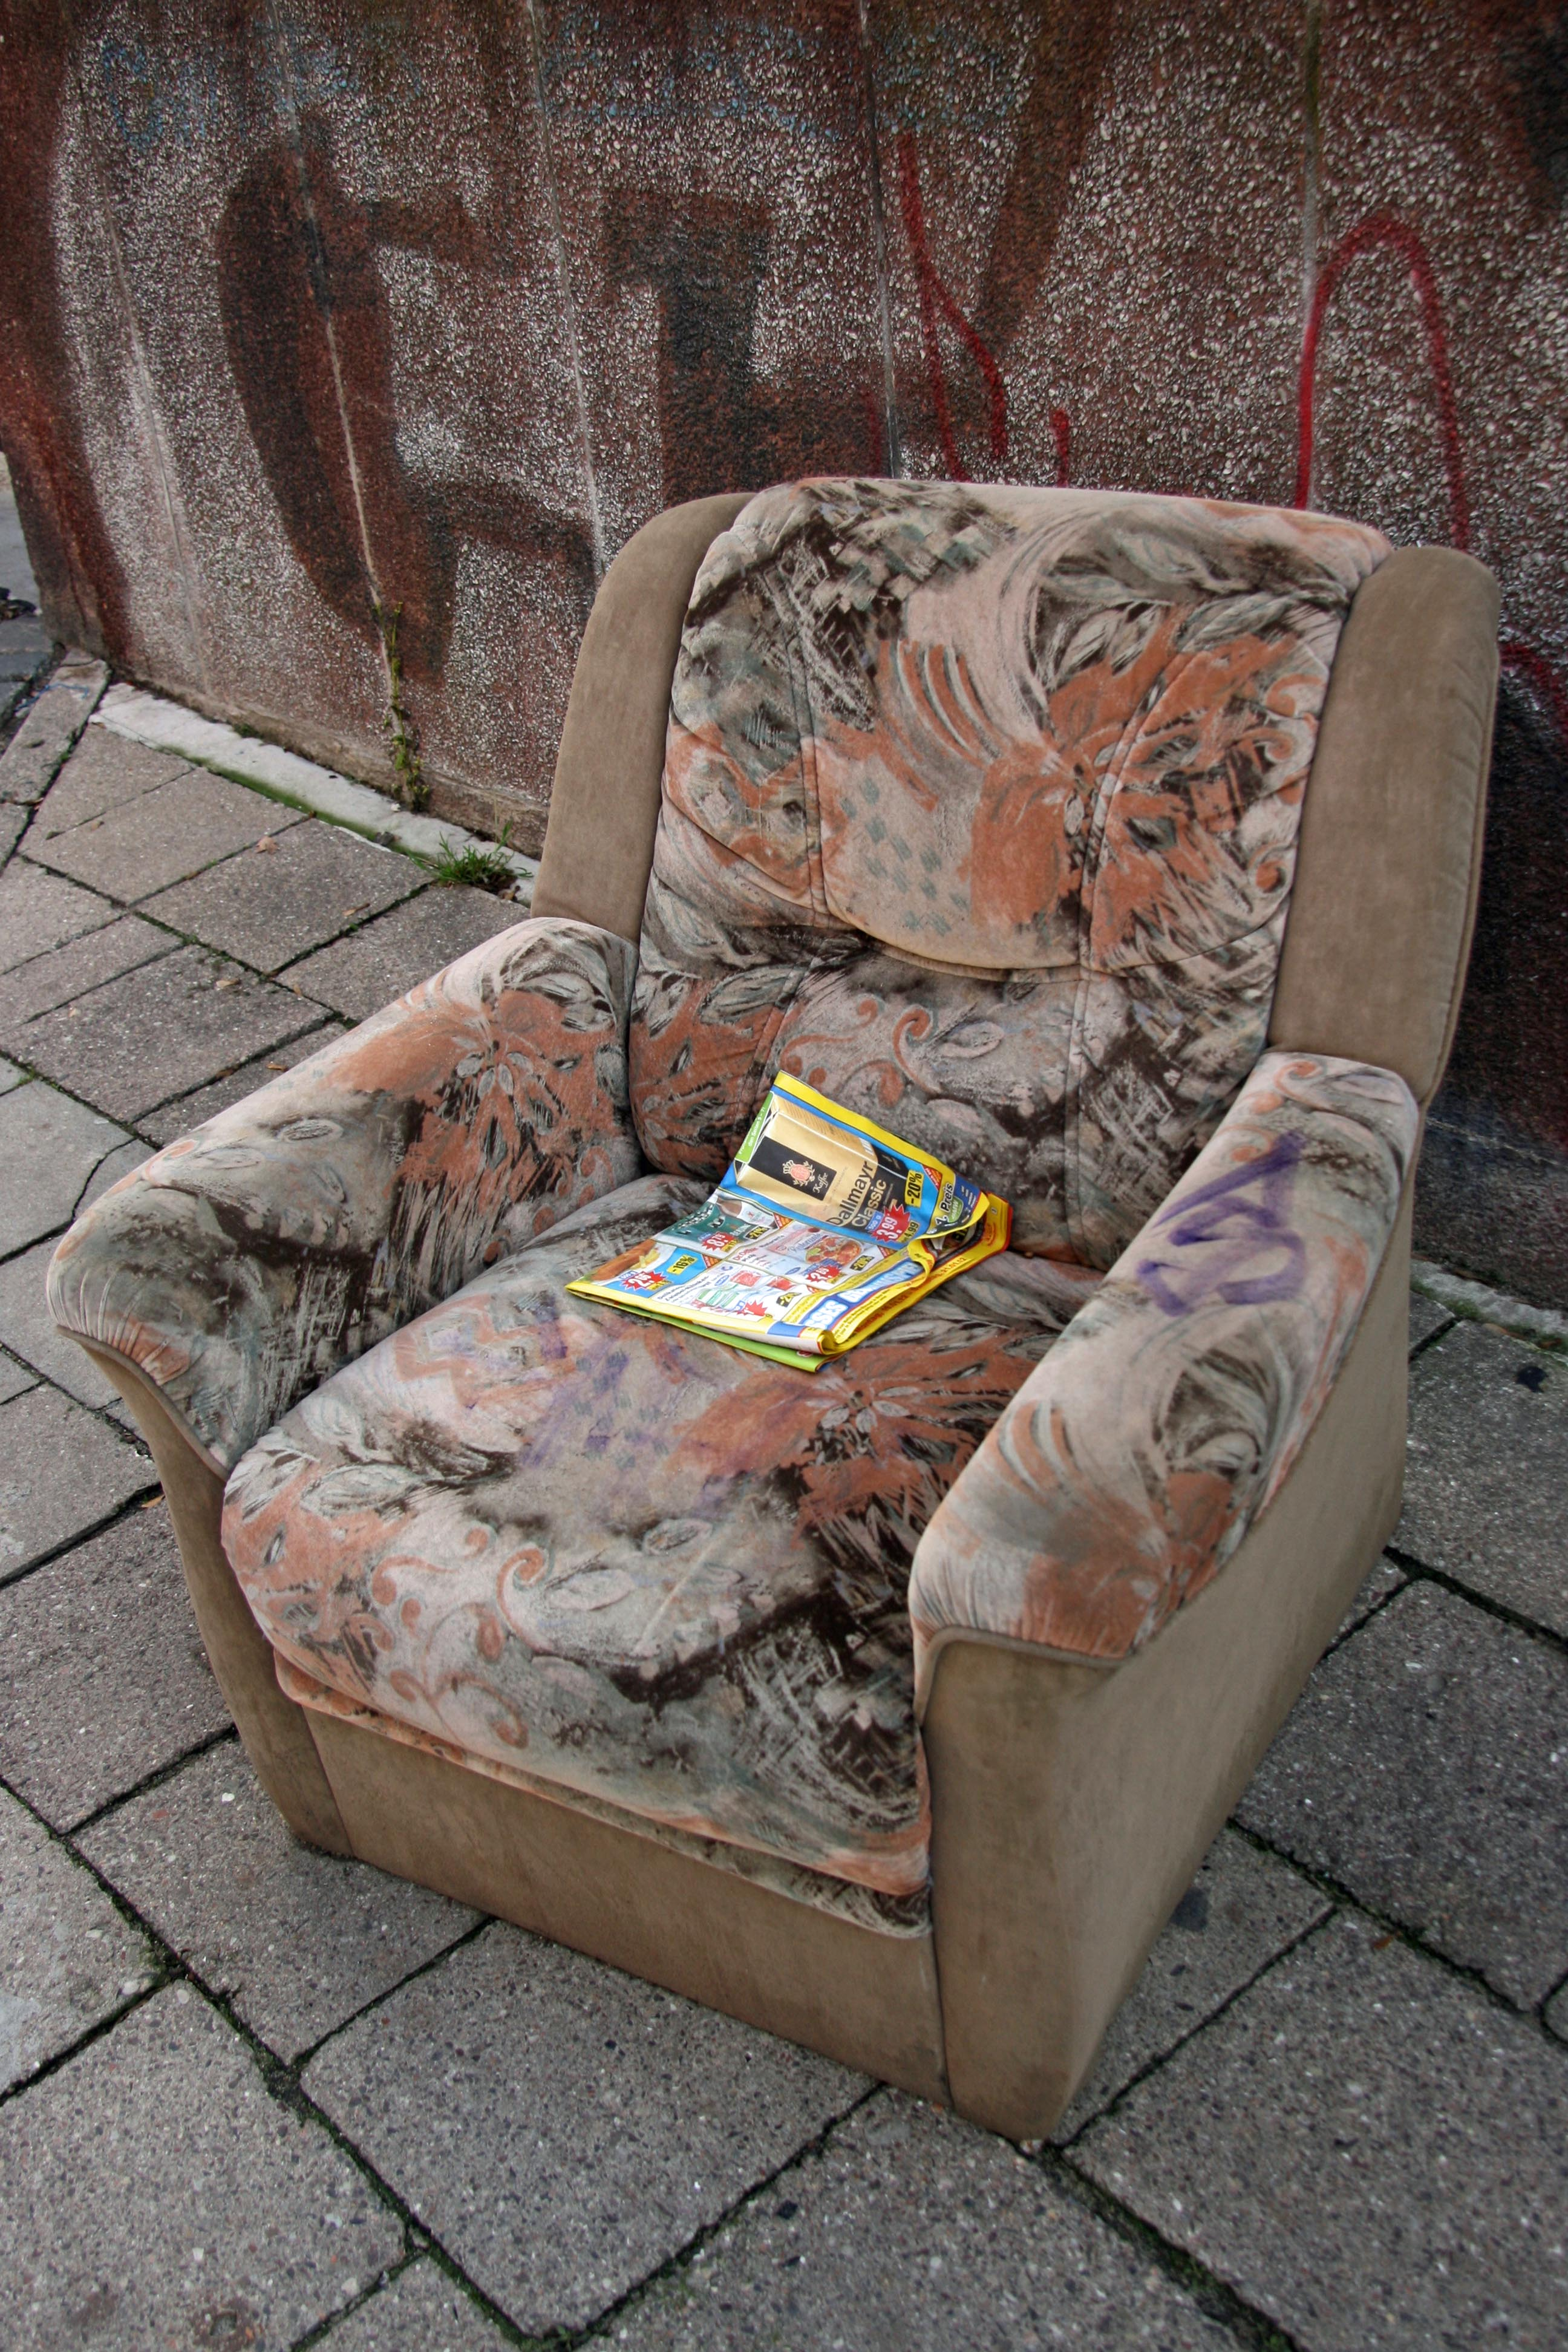 An old armchair left on the street in Prenzlauer Berg in Berlin